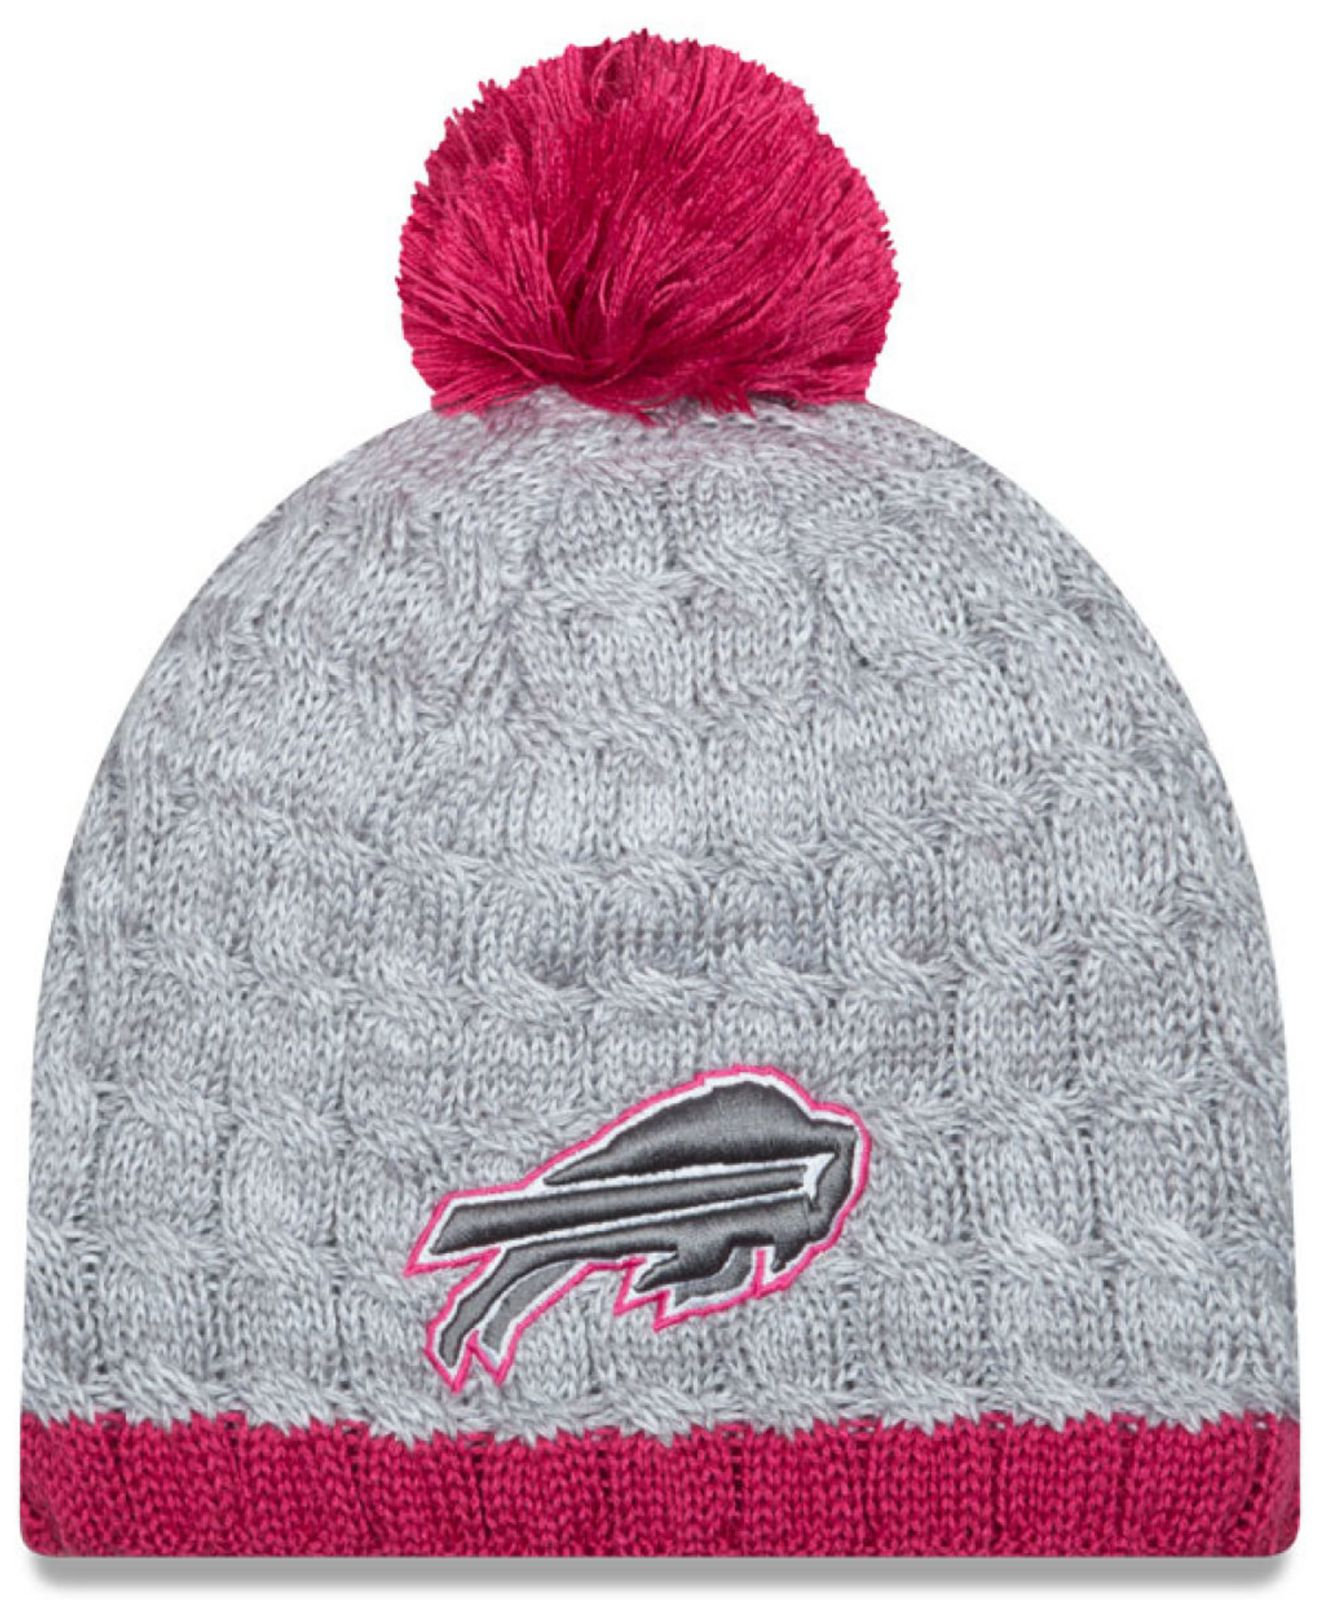 KTZ Women's Buffalo Bills Breast Cancer Awareness Knit Hat in Pink